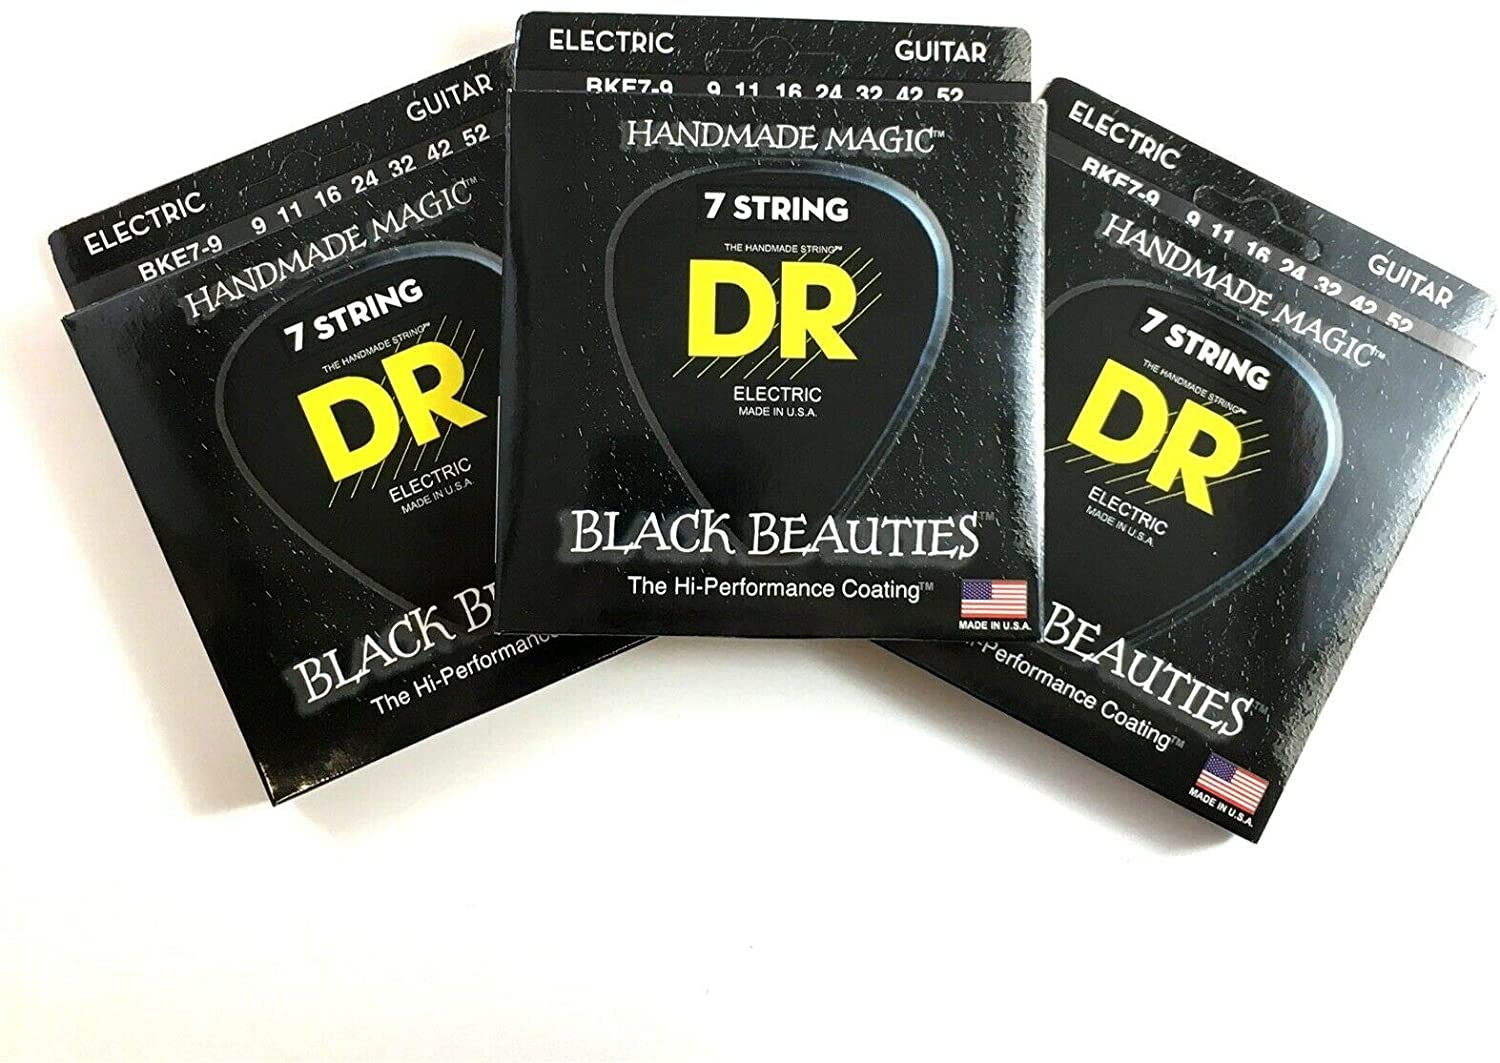 DR Guitar Strings Electric 7-String 3-Pack K3 Black Beauties 9-52 Extra Light